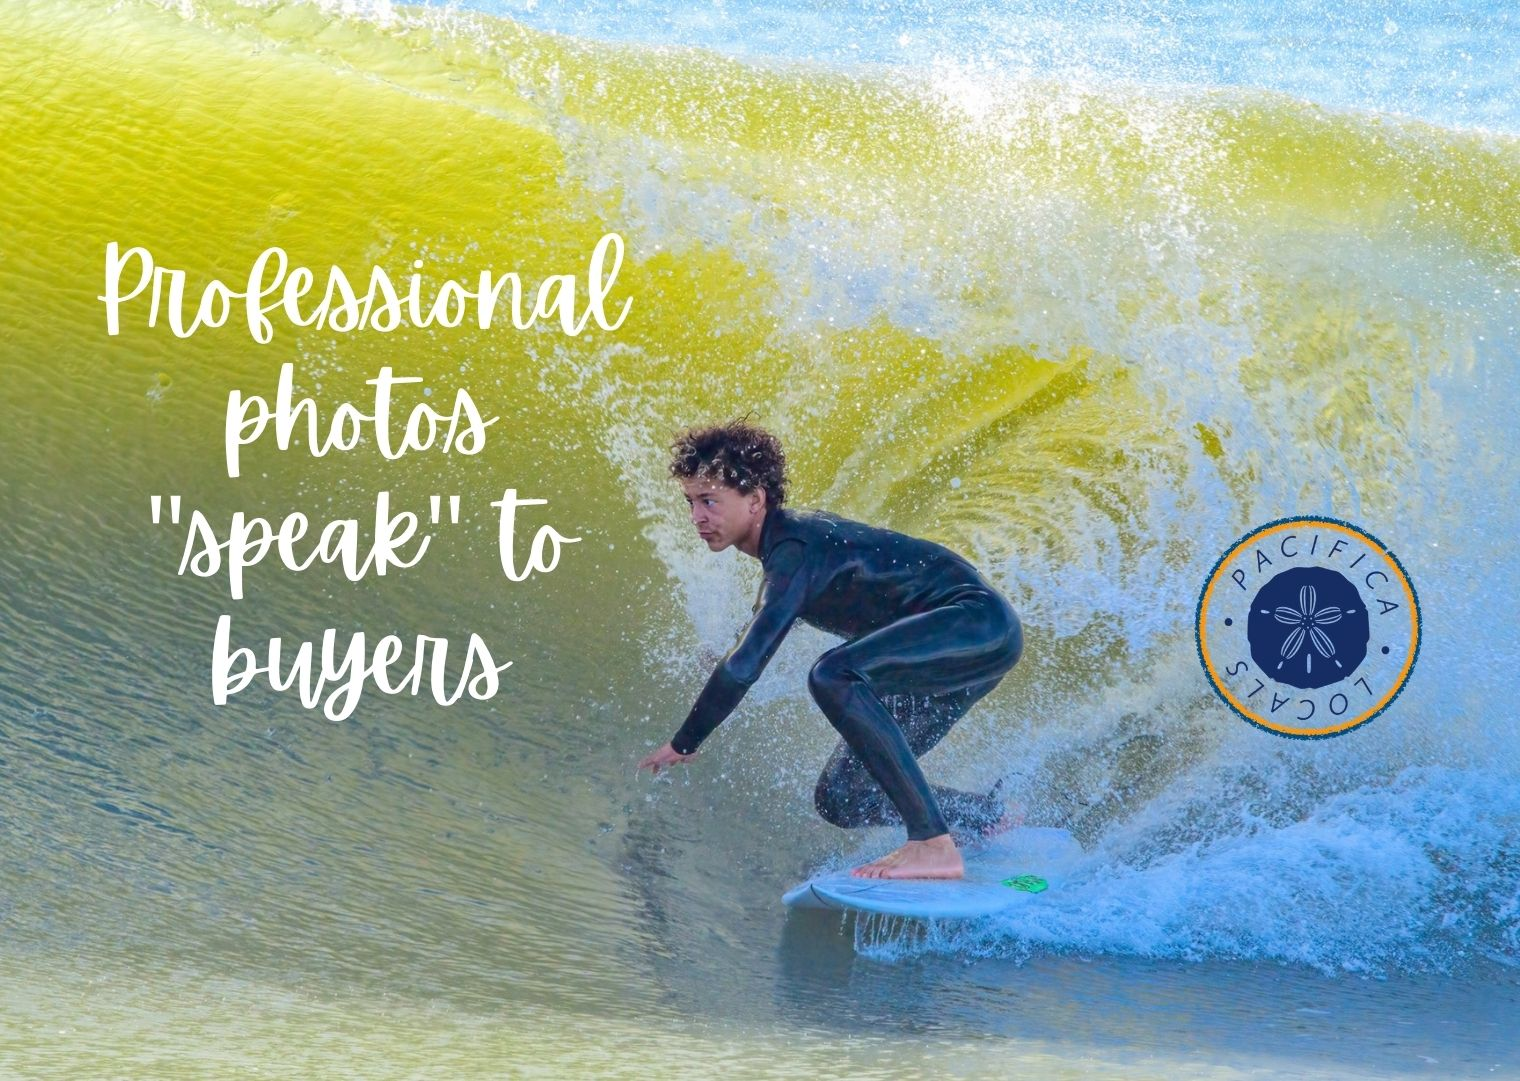 man surfing with wave coming over his head and text Professional photos speak to buyers